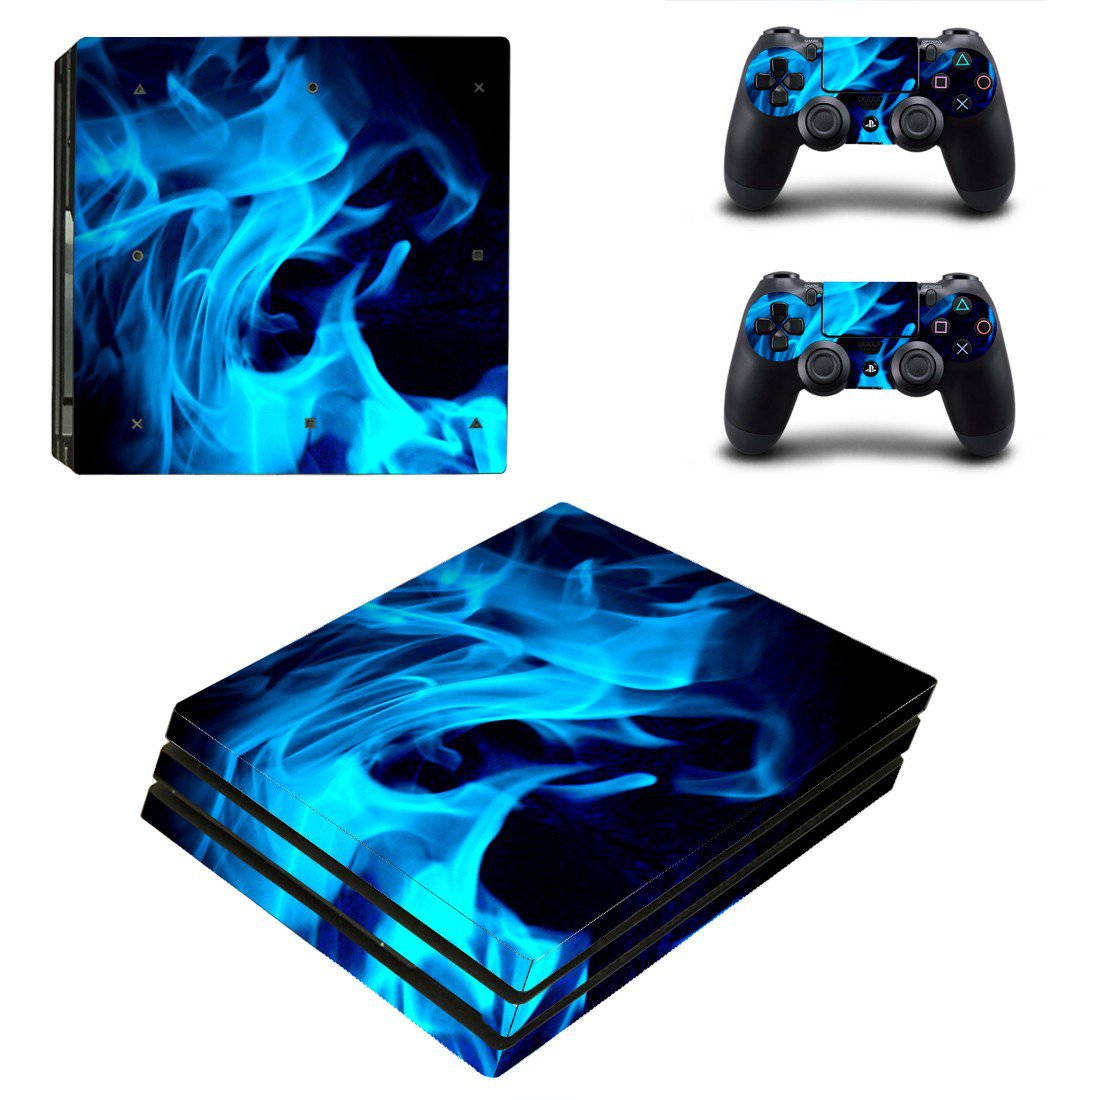 Blue Fires ps4 pro skin decal for console and controllers